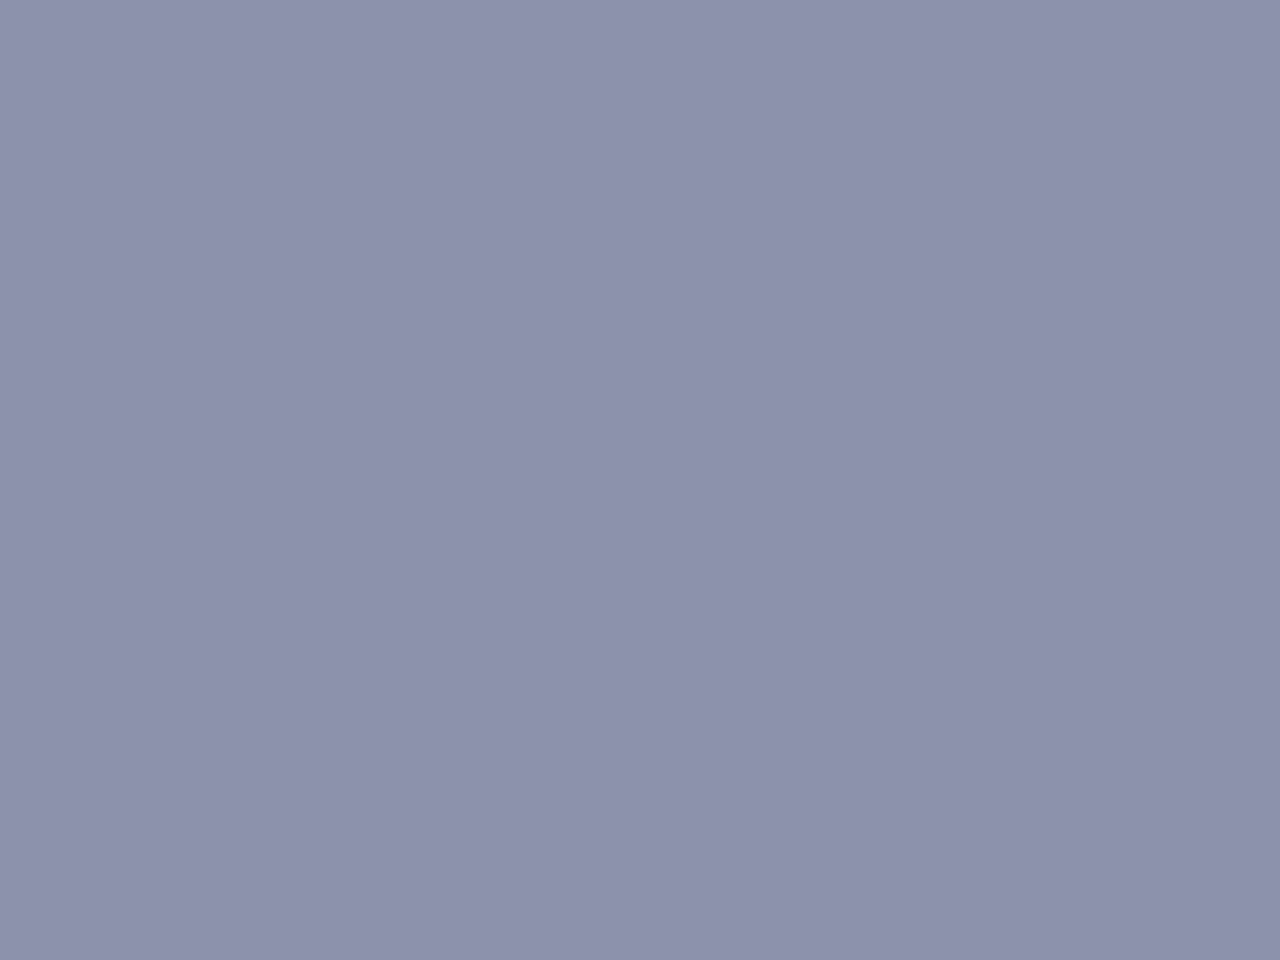 1280x960 Gray-blue Solid Color Background